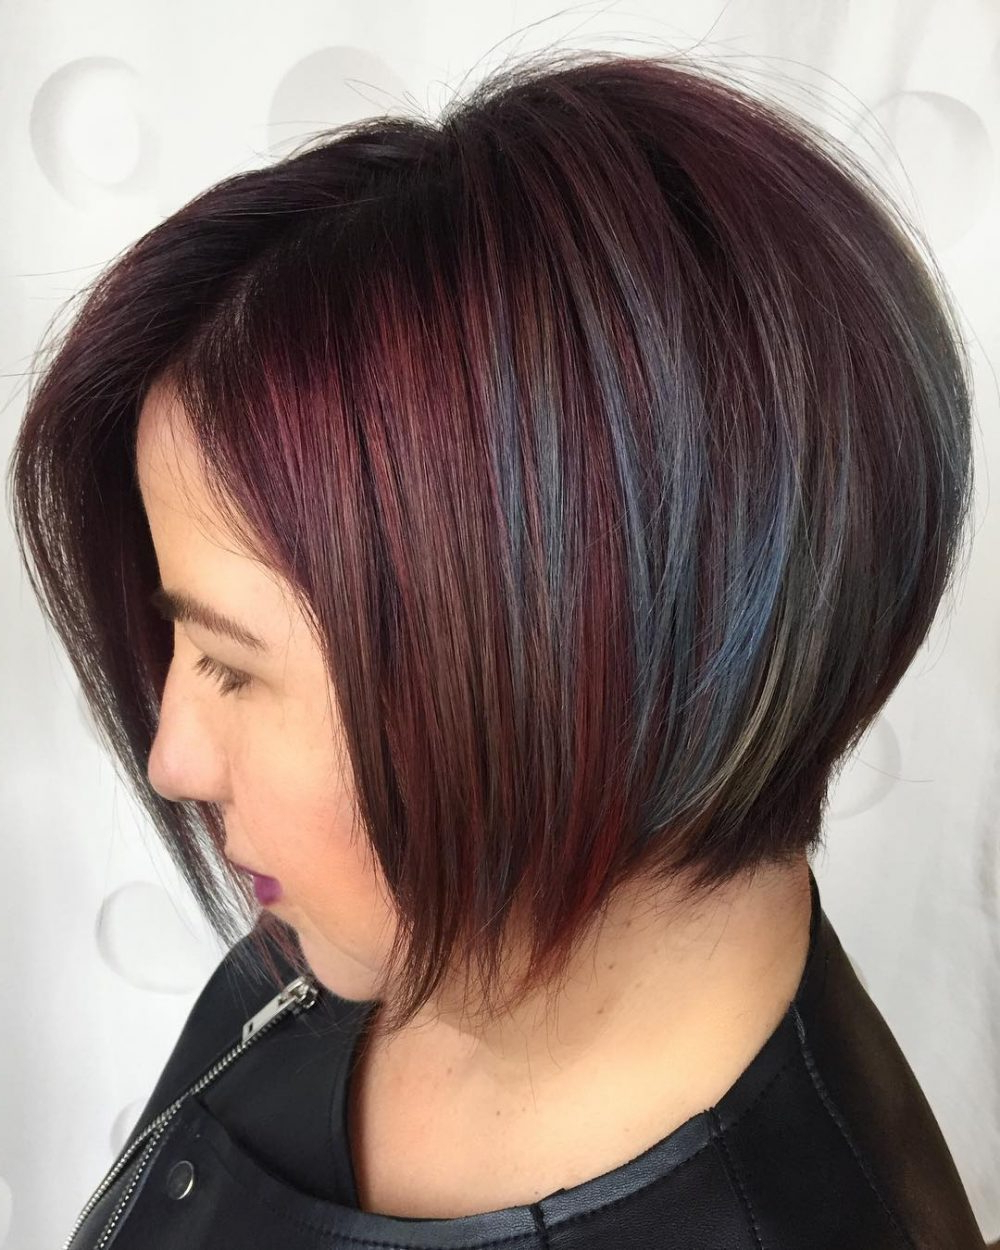 2020 Latest Uneven Layered Bob Hairstyles For Thick Hair